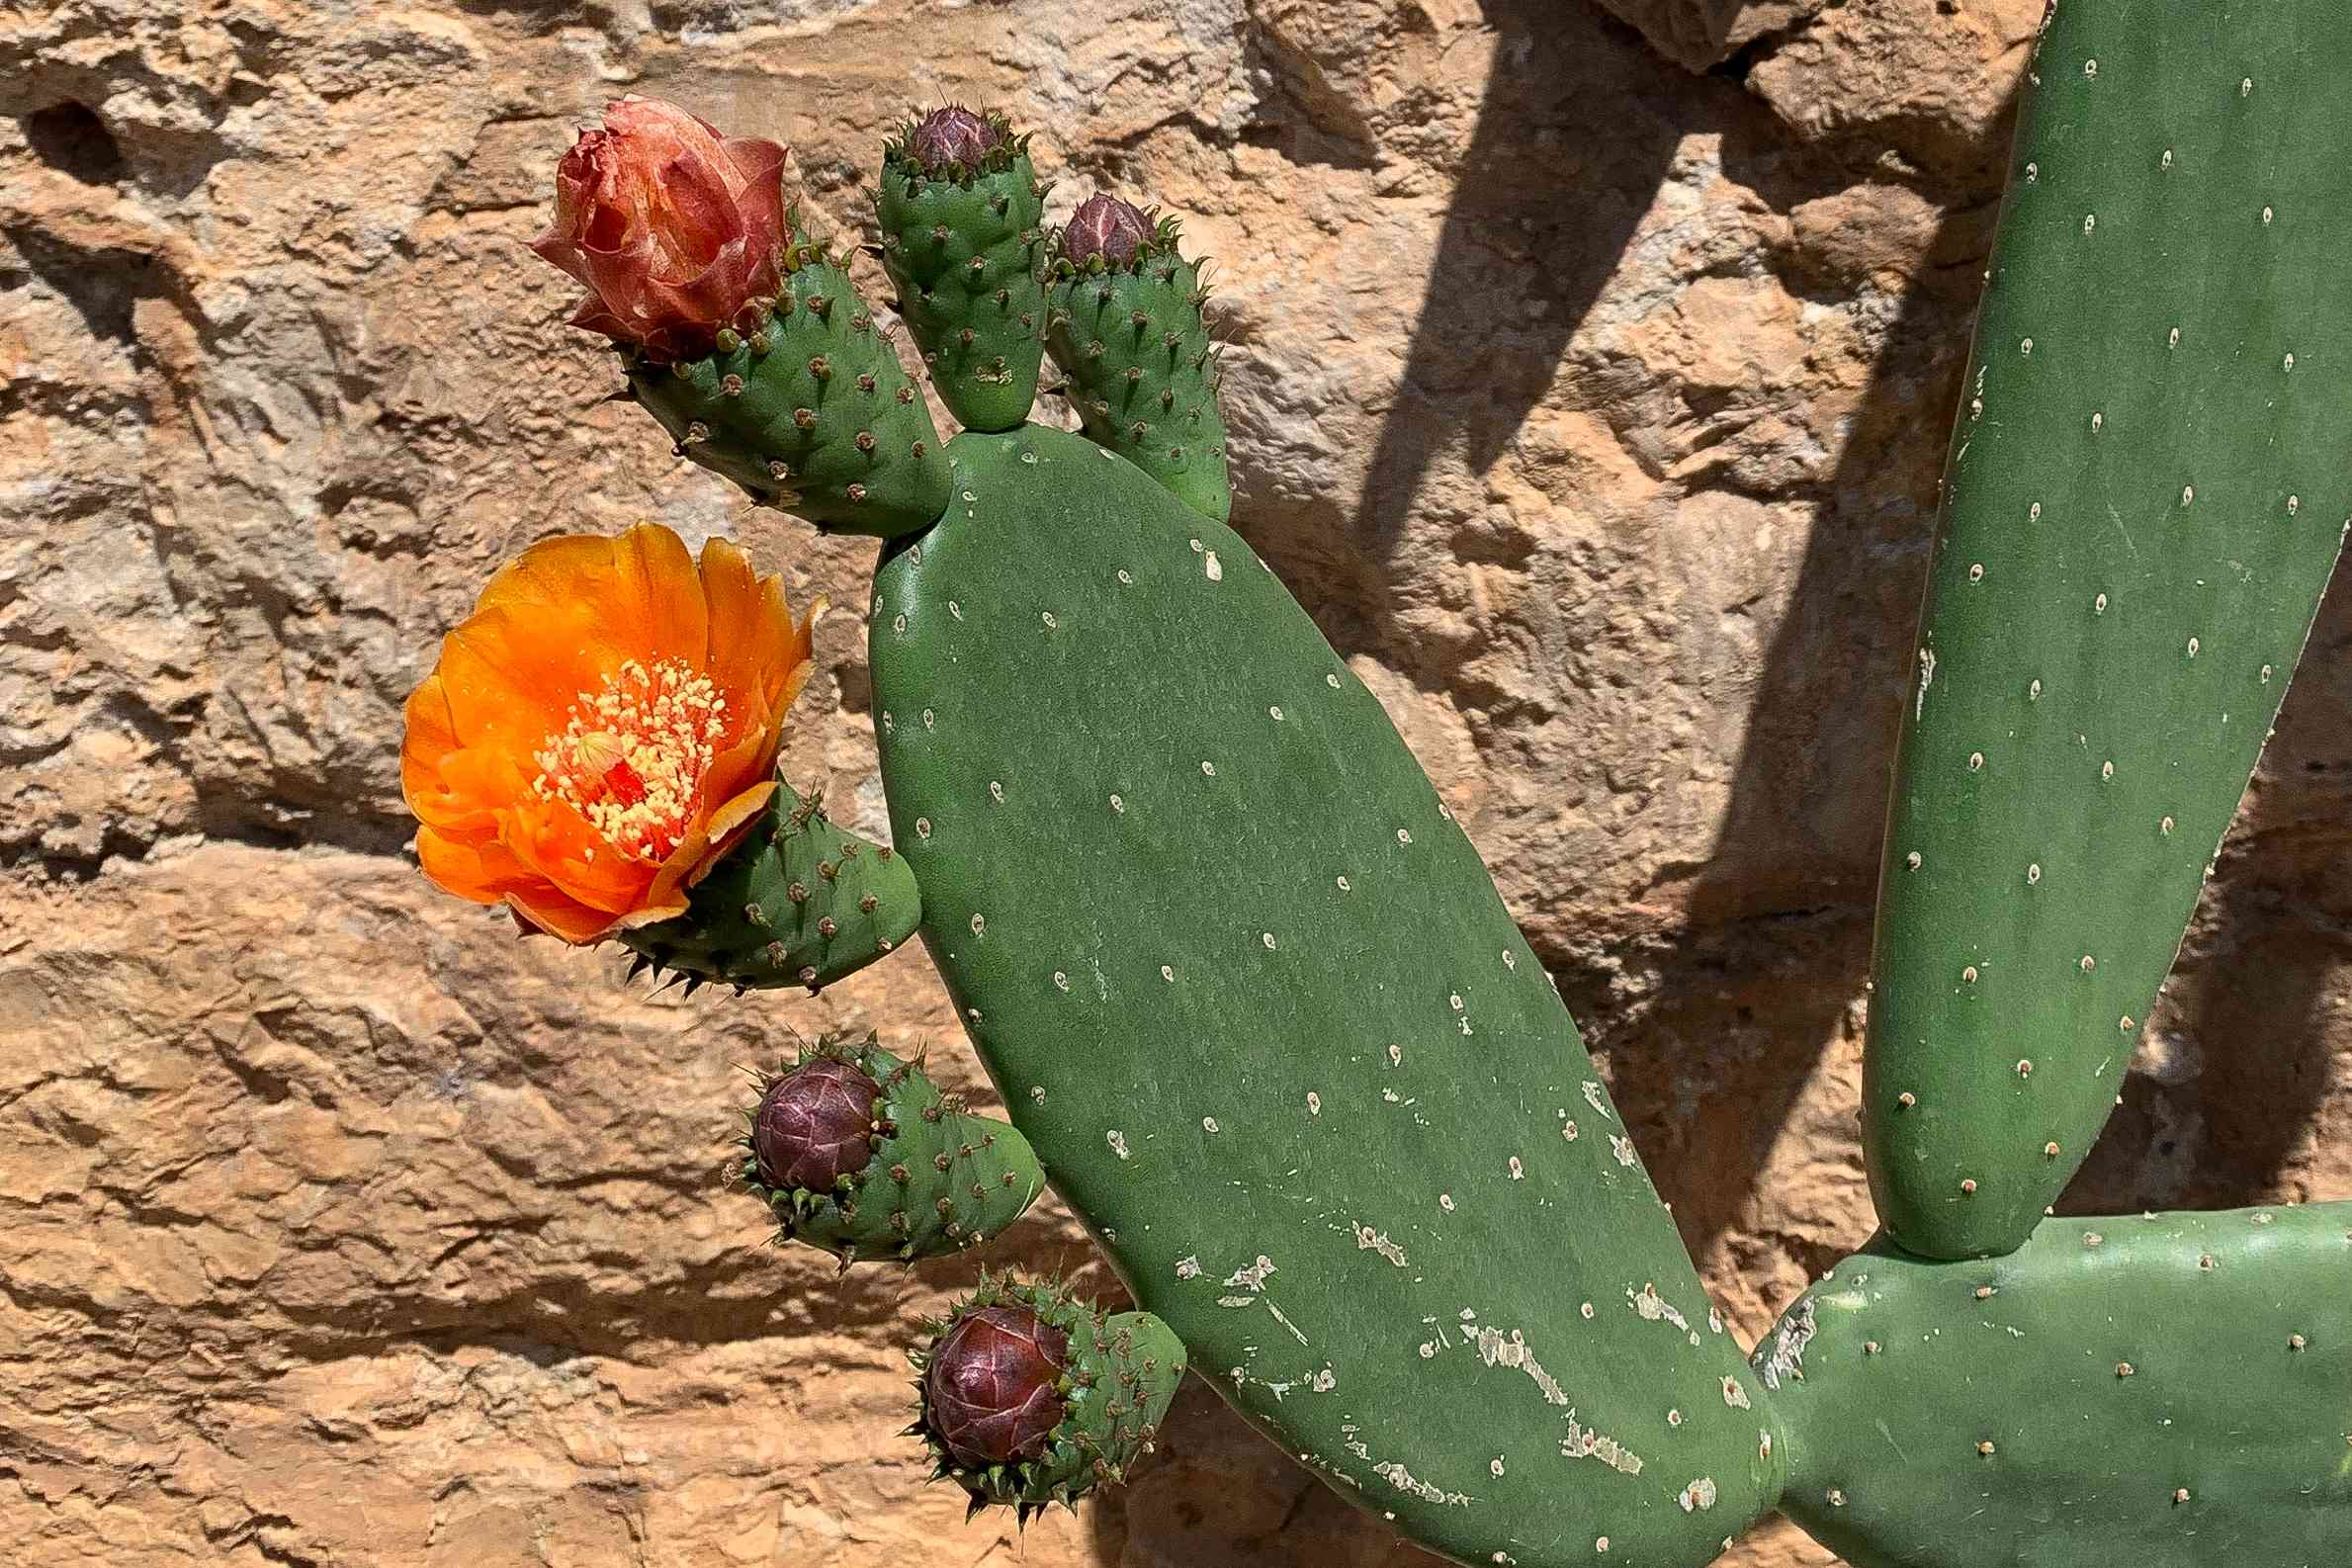 Cactus plant with flat rounded leaves and orange and red flowers blooming in sunlight